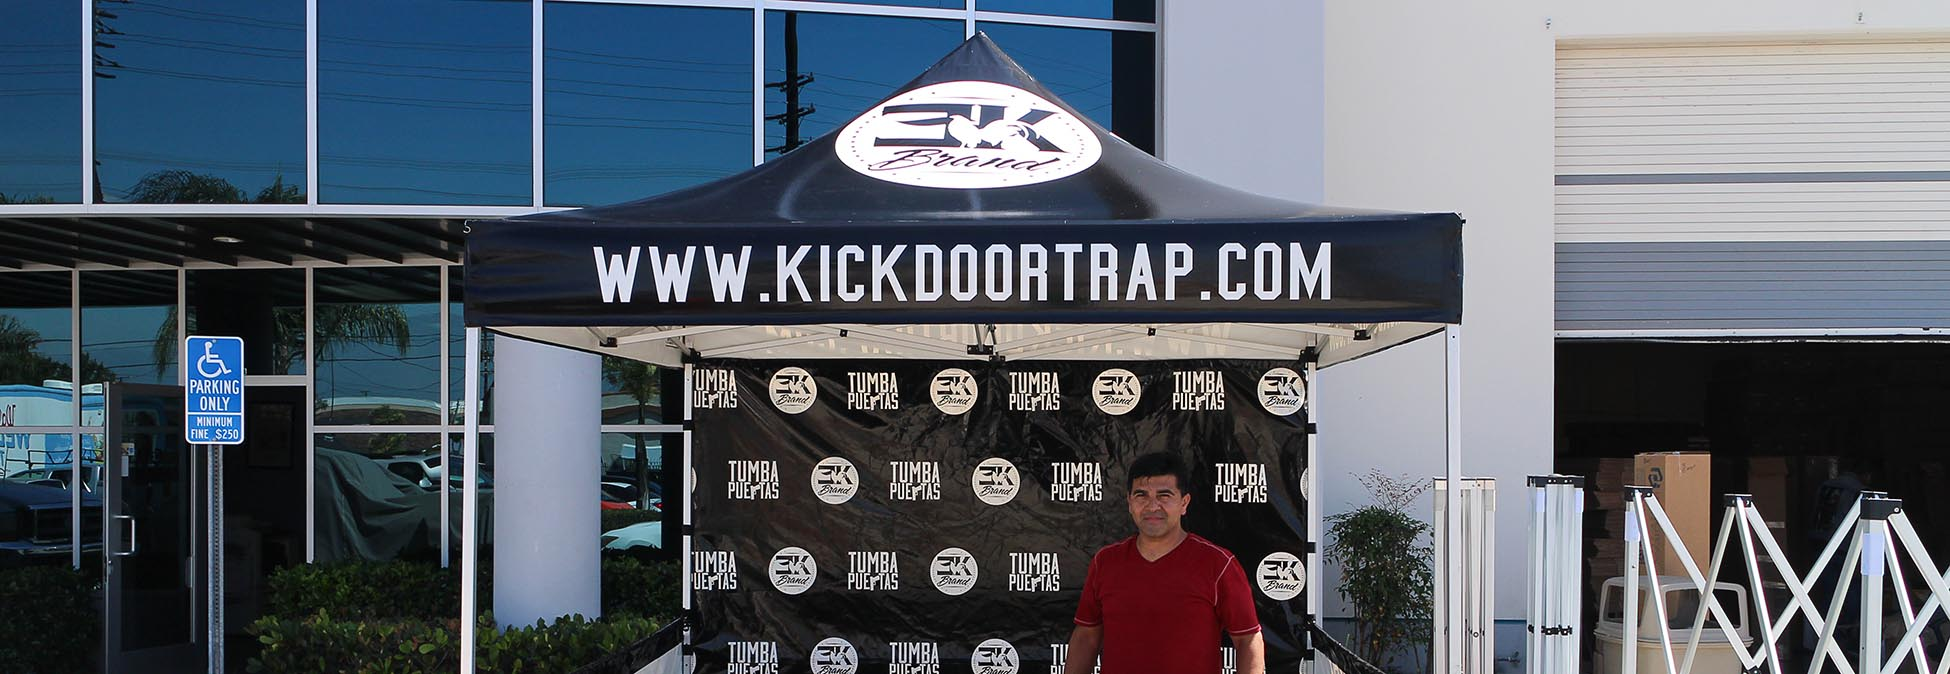 kickdoor-trap-header.jpg